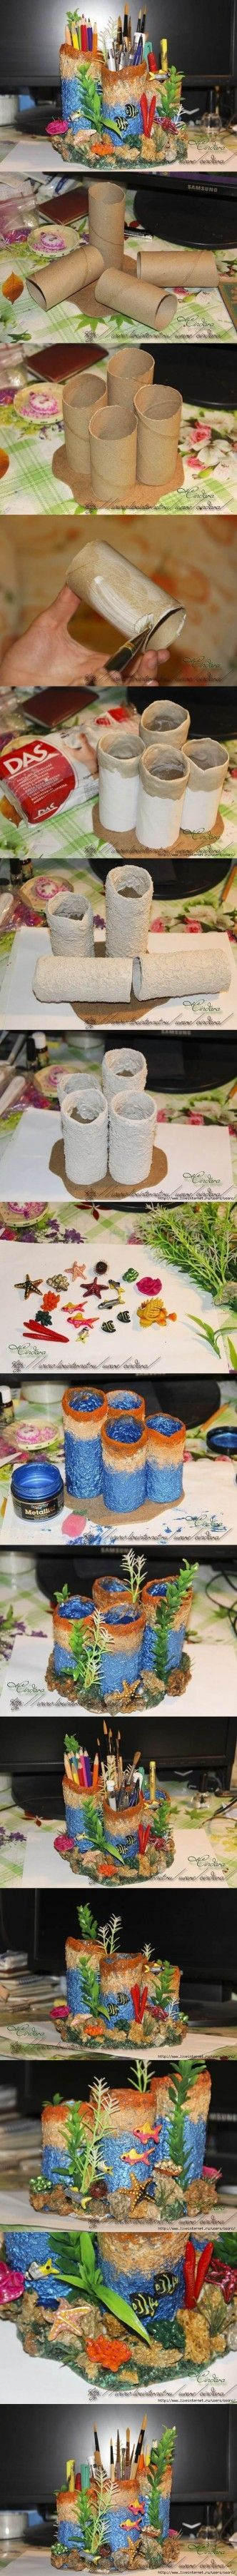 Best 25+ Coral reef craft ideas only on Pinterest